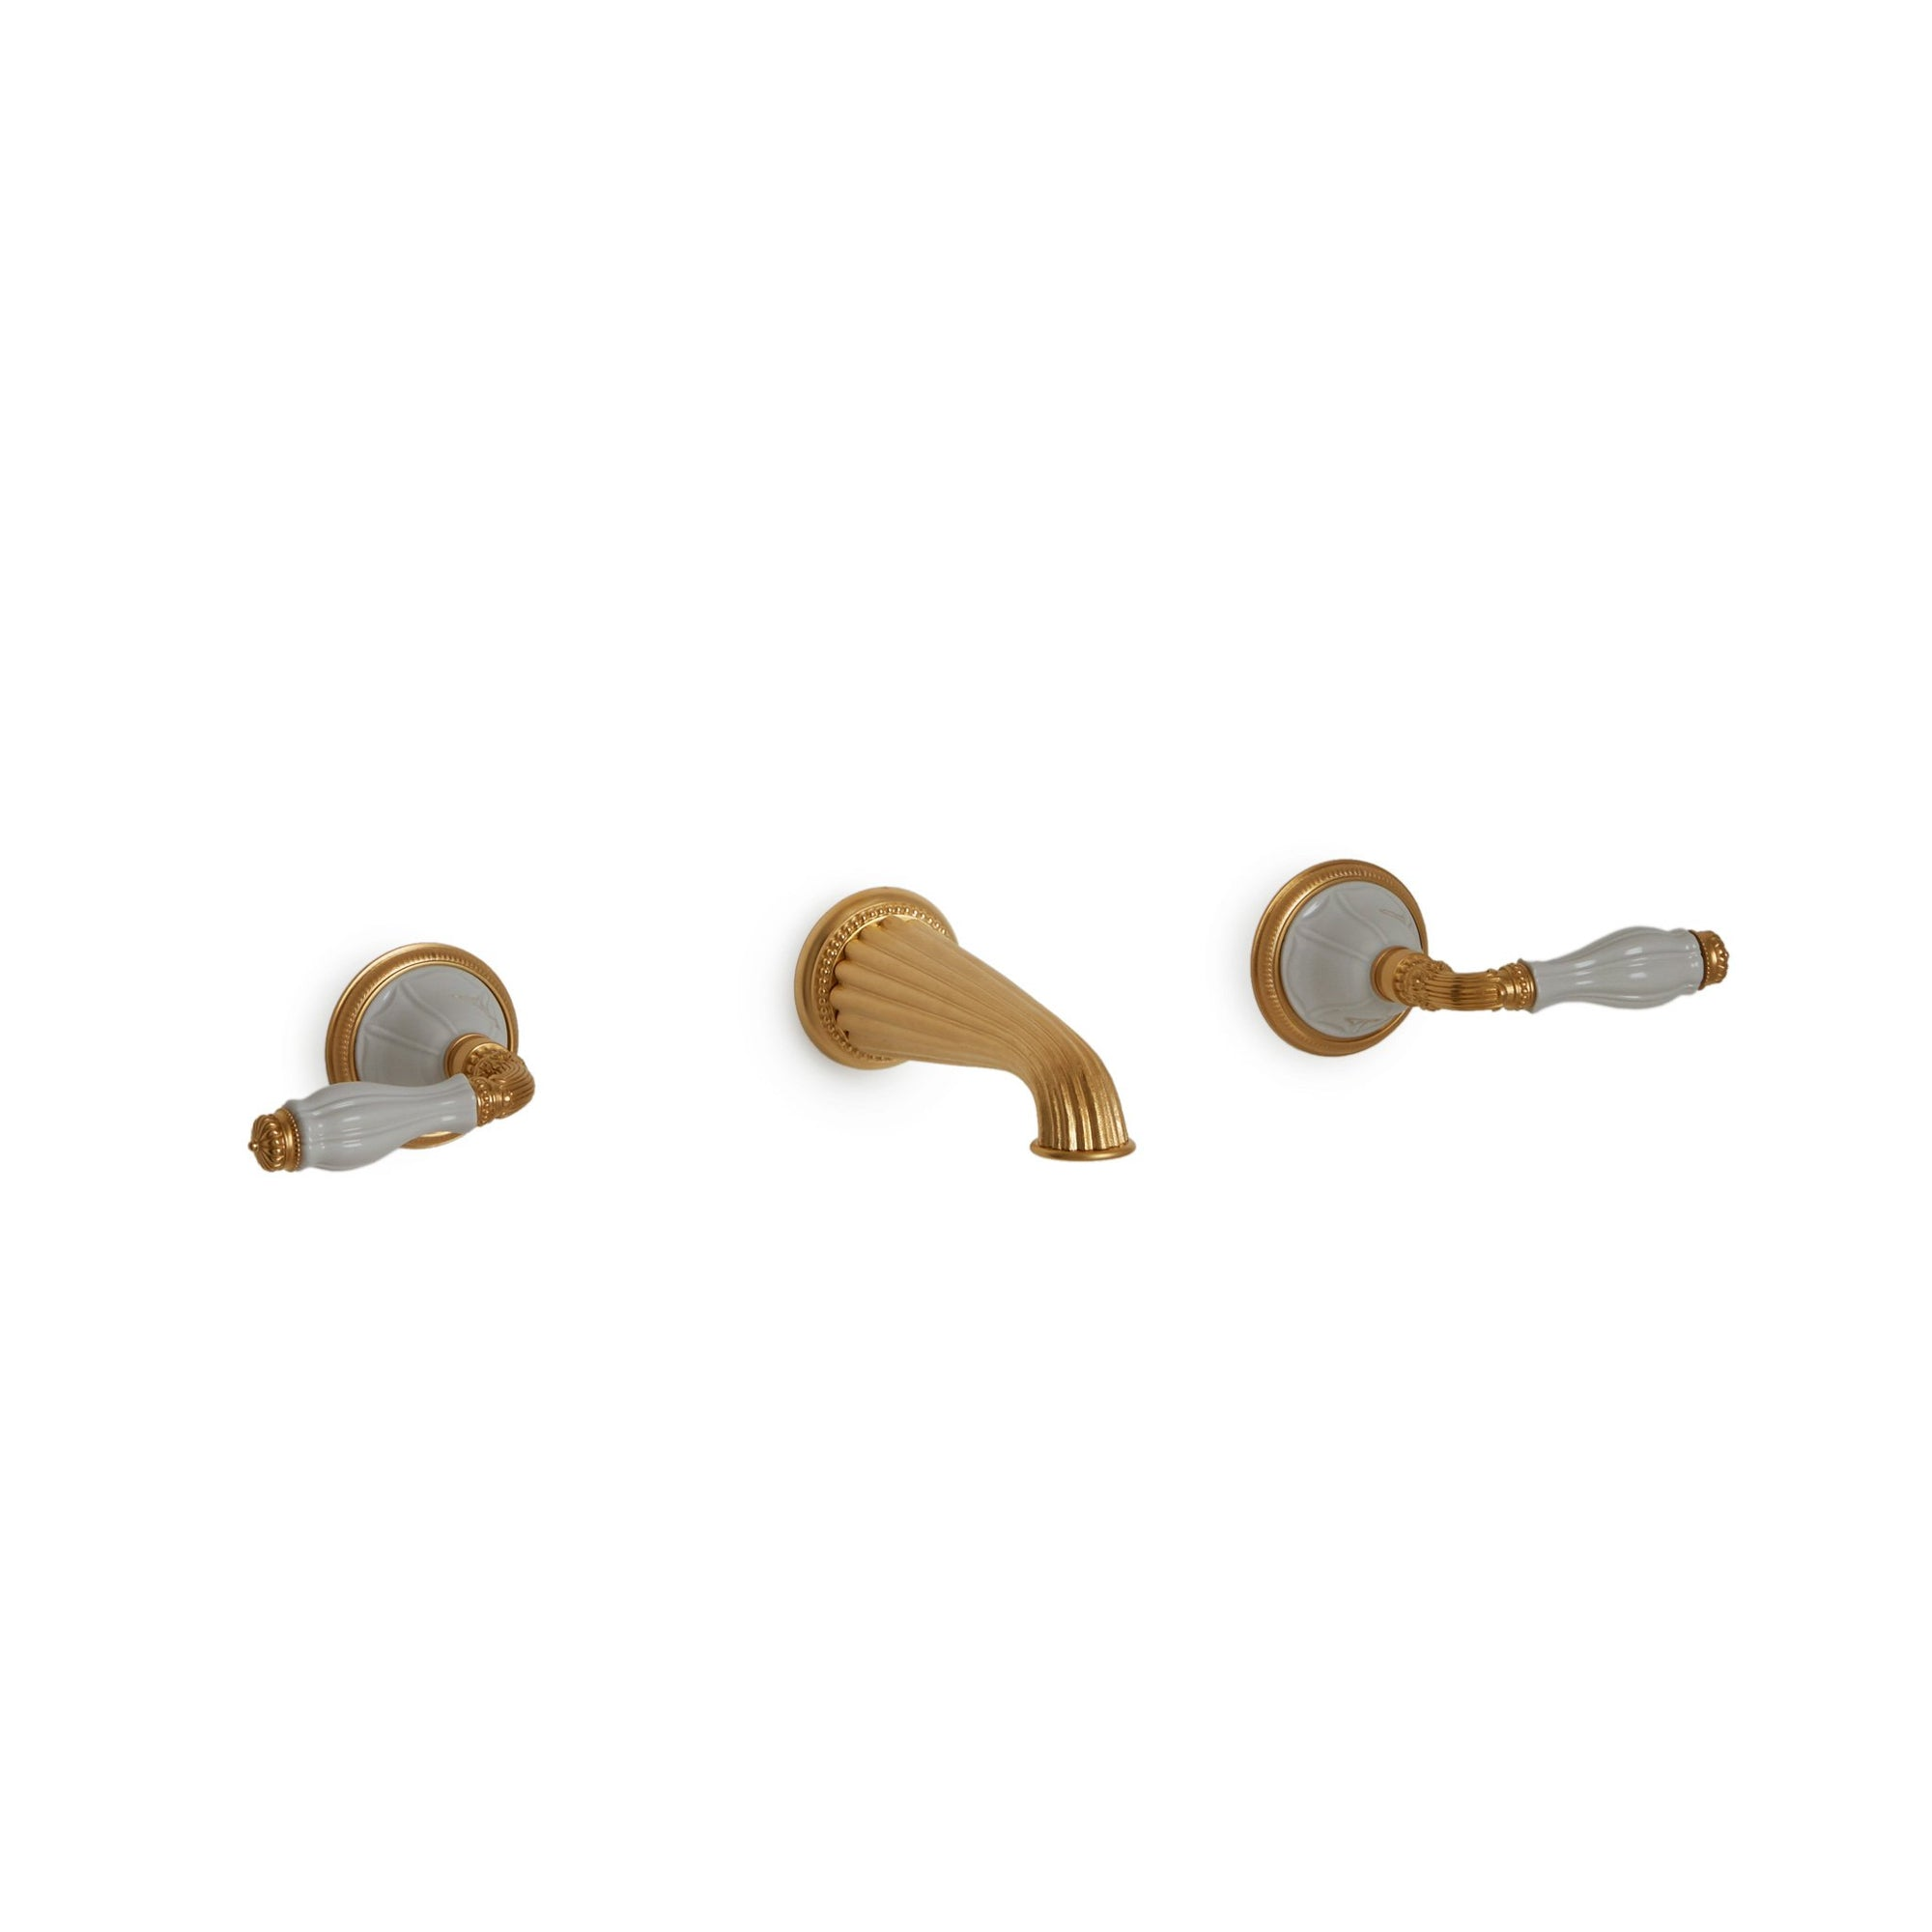 1029WBS821-03WH-GP Sherle Wagner International Scalloped Ceramic Fluted Lever Wall Mount Faucet Set in Gold Plate metal finish